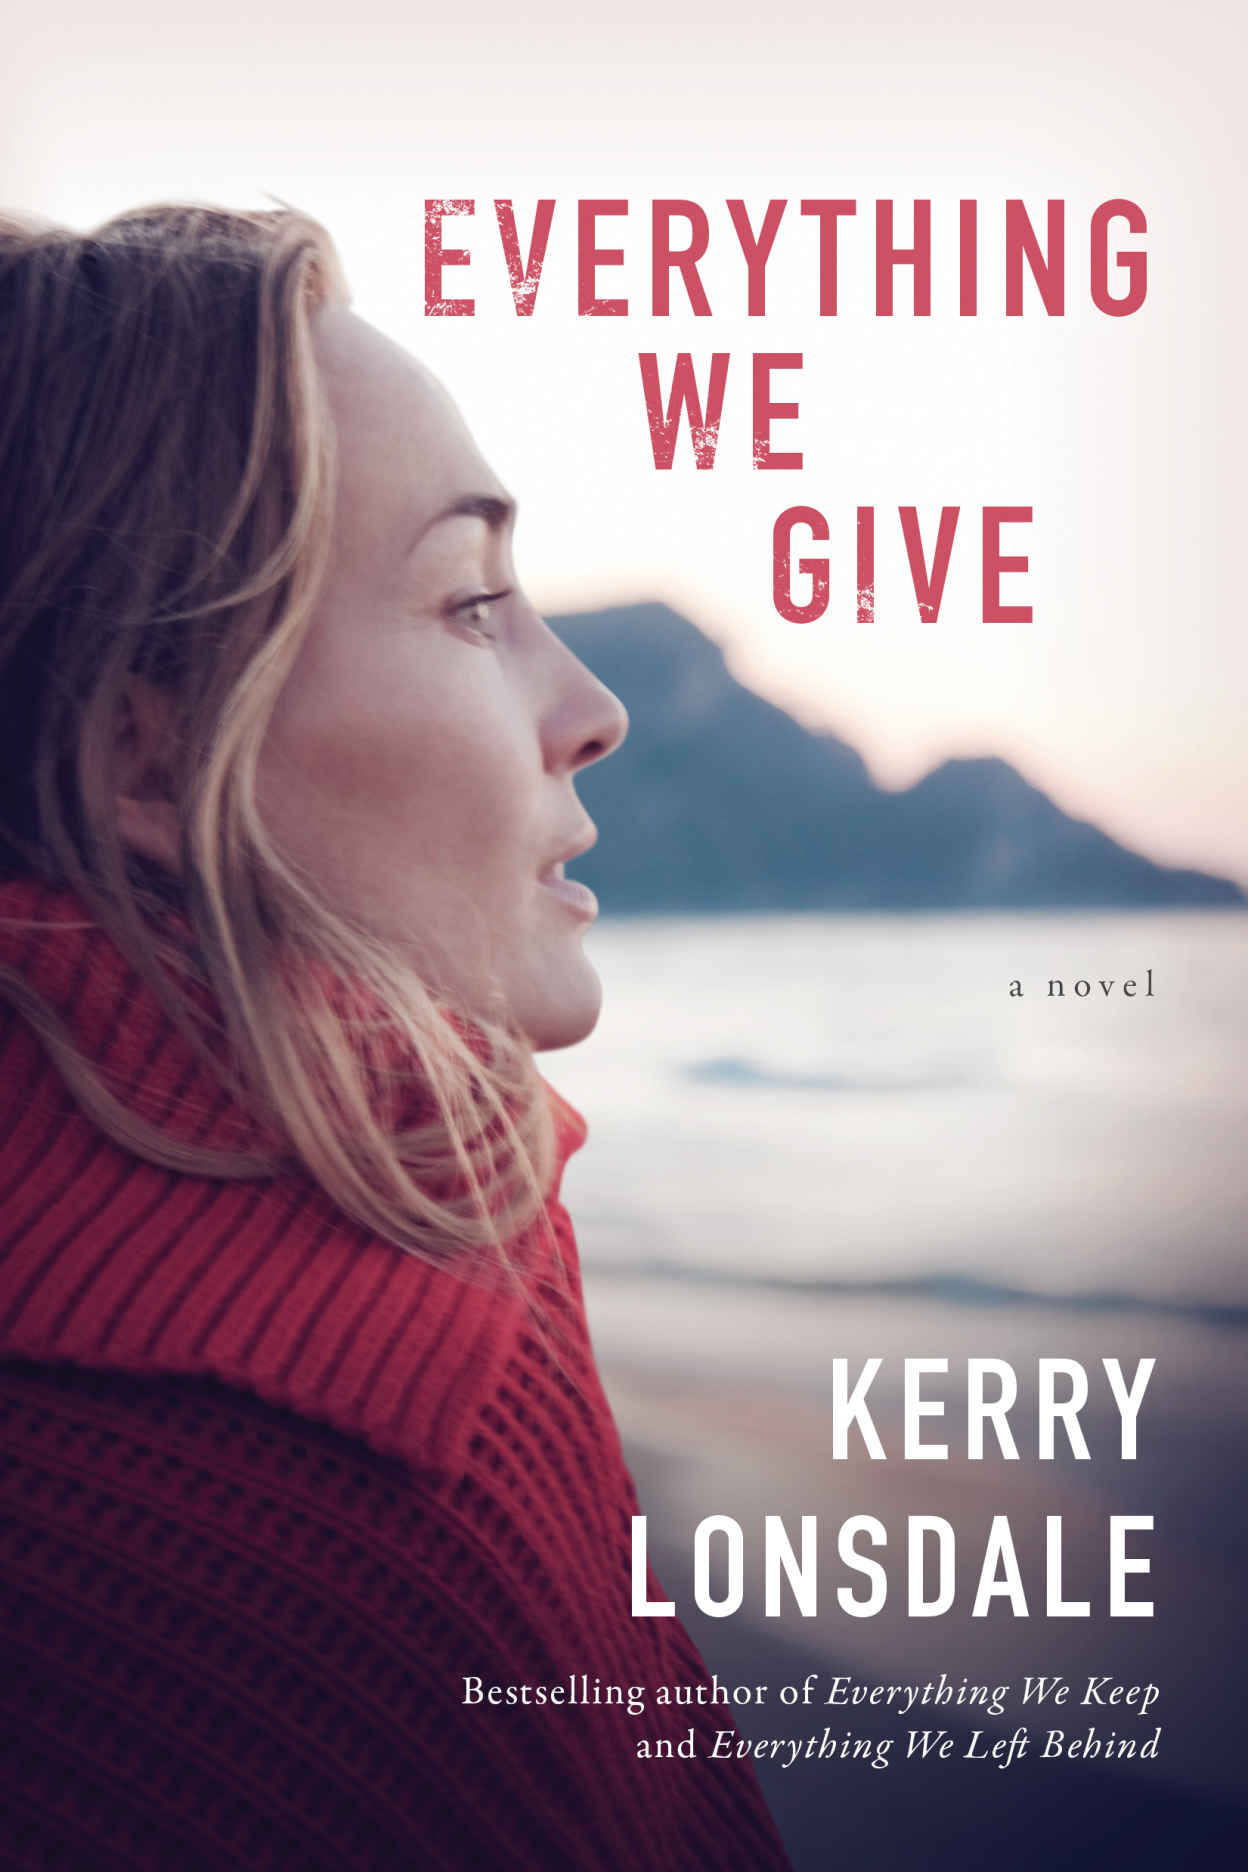 Everything We Give: A Novel - Kerry Lonsdale [kindle] [mobi]